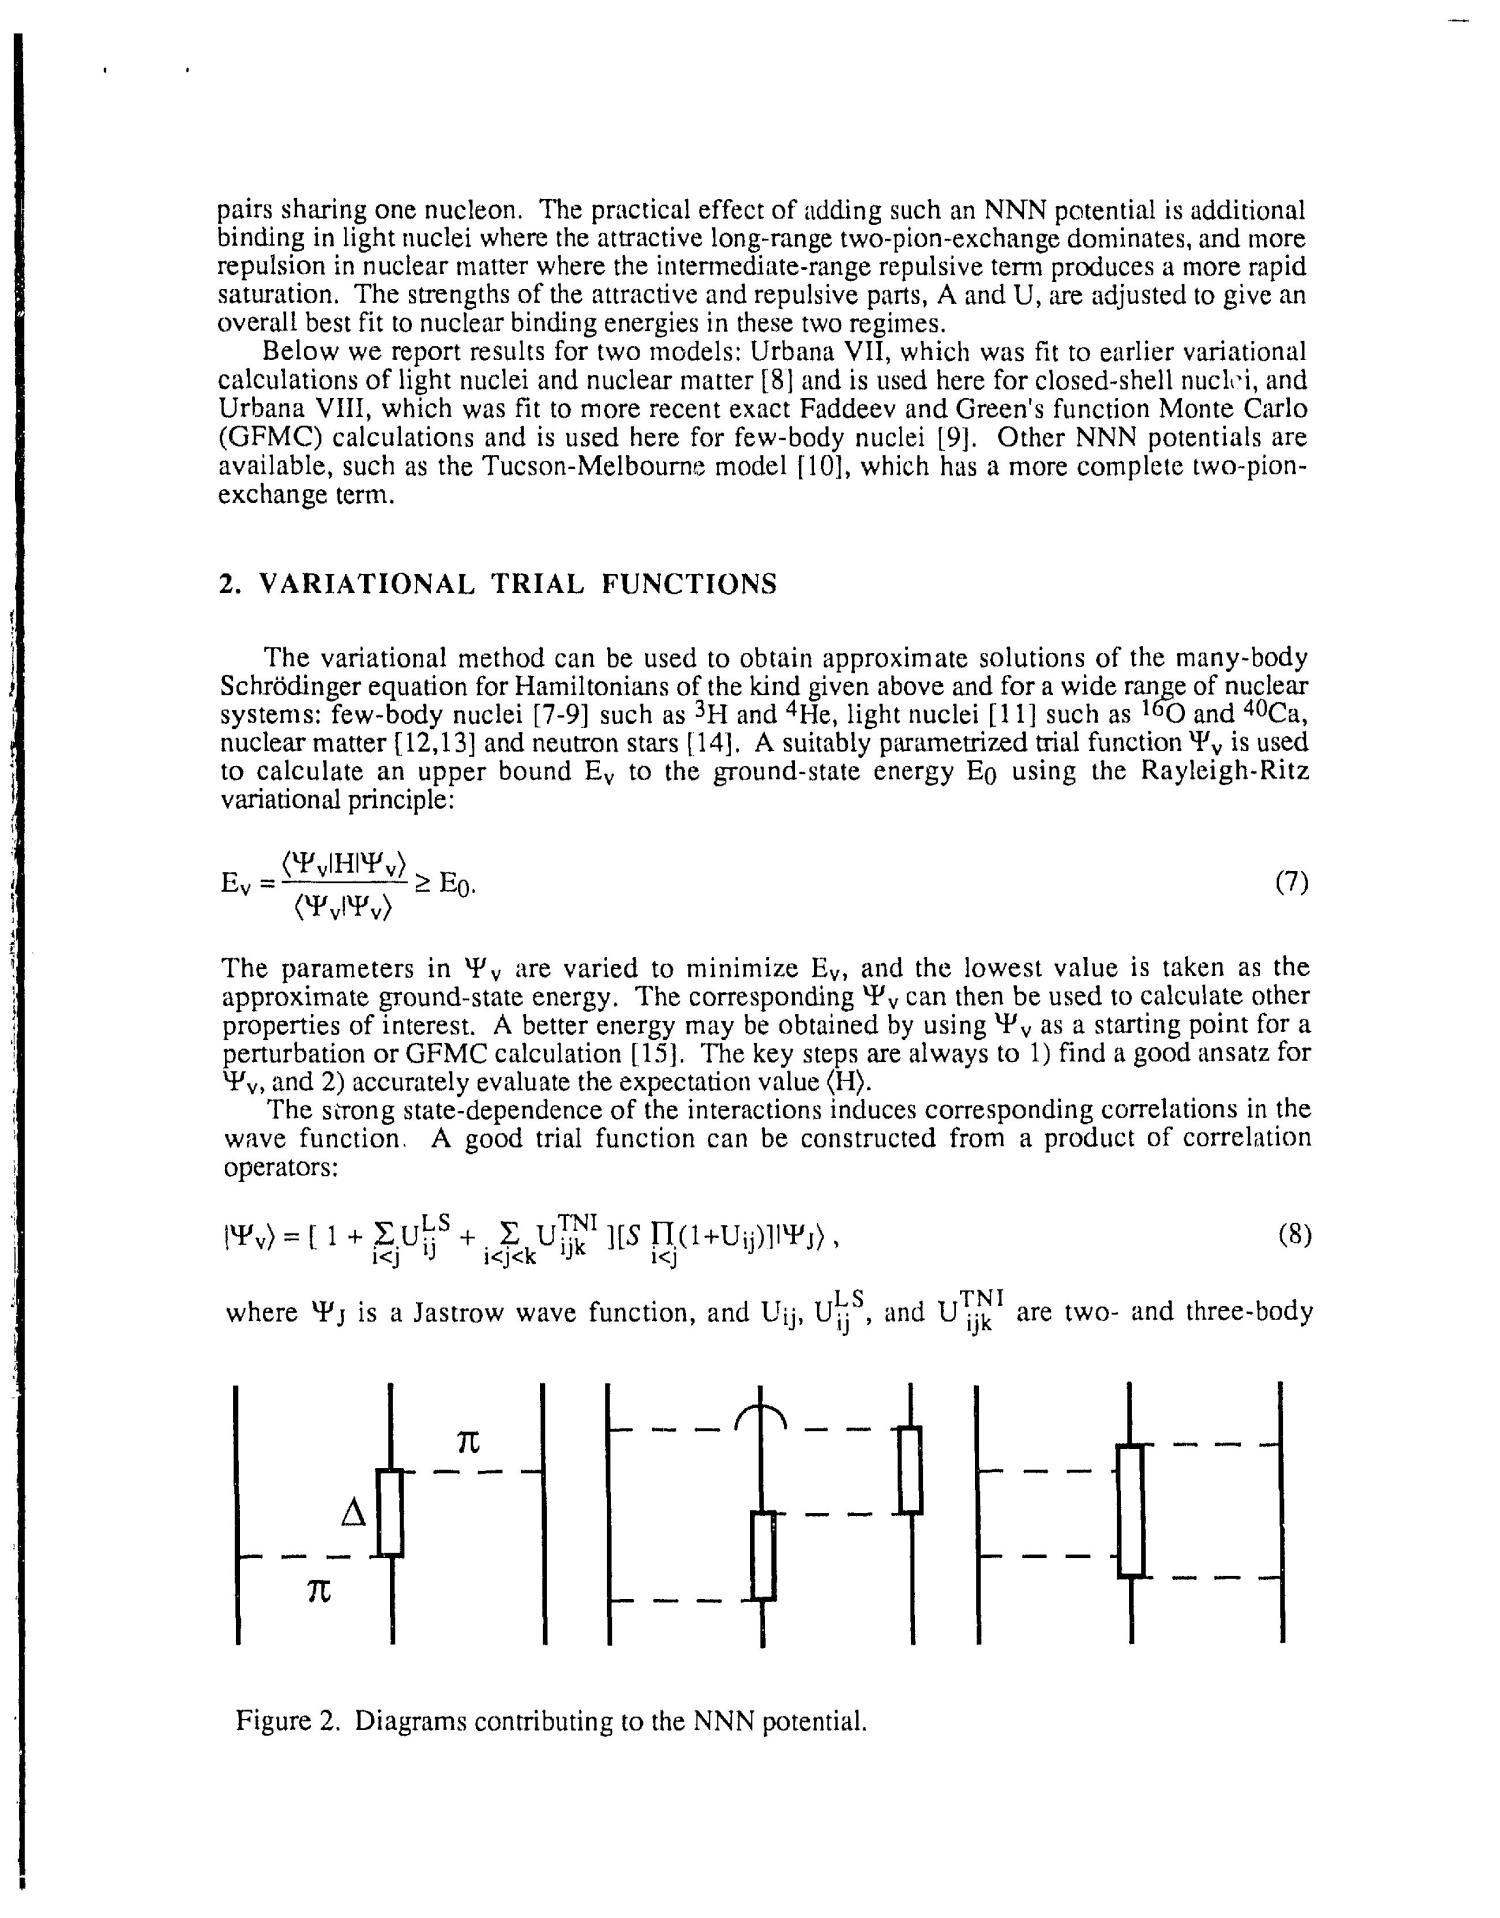 Microscopic calculations of nuclear structure and nuclear correlations                                                                                                      [Sequence #]: 3 of 15